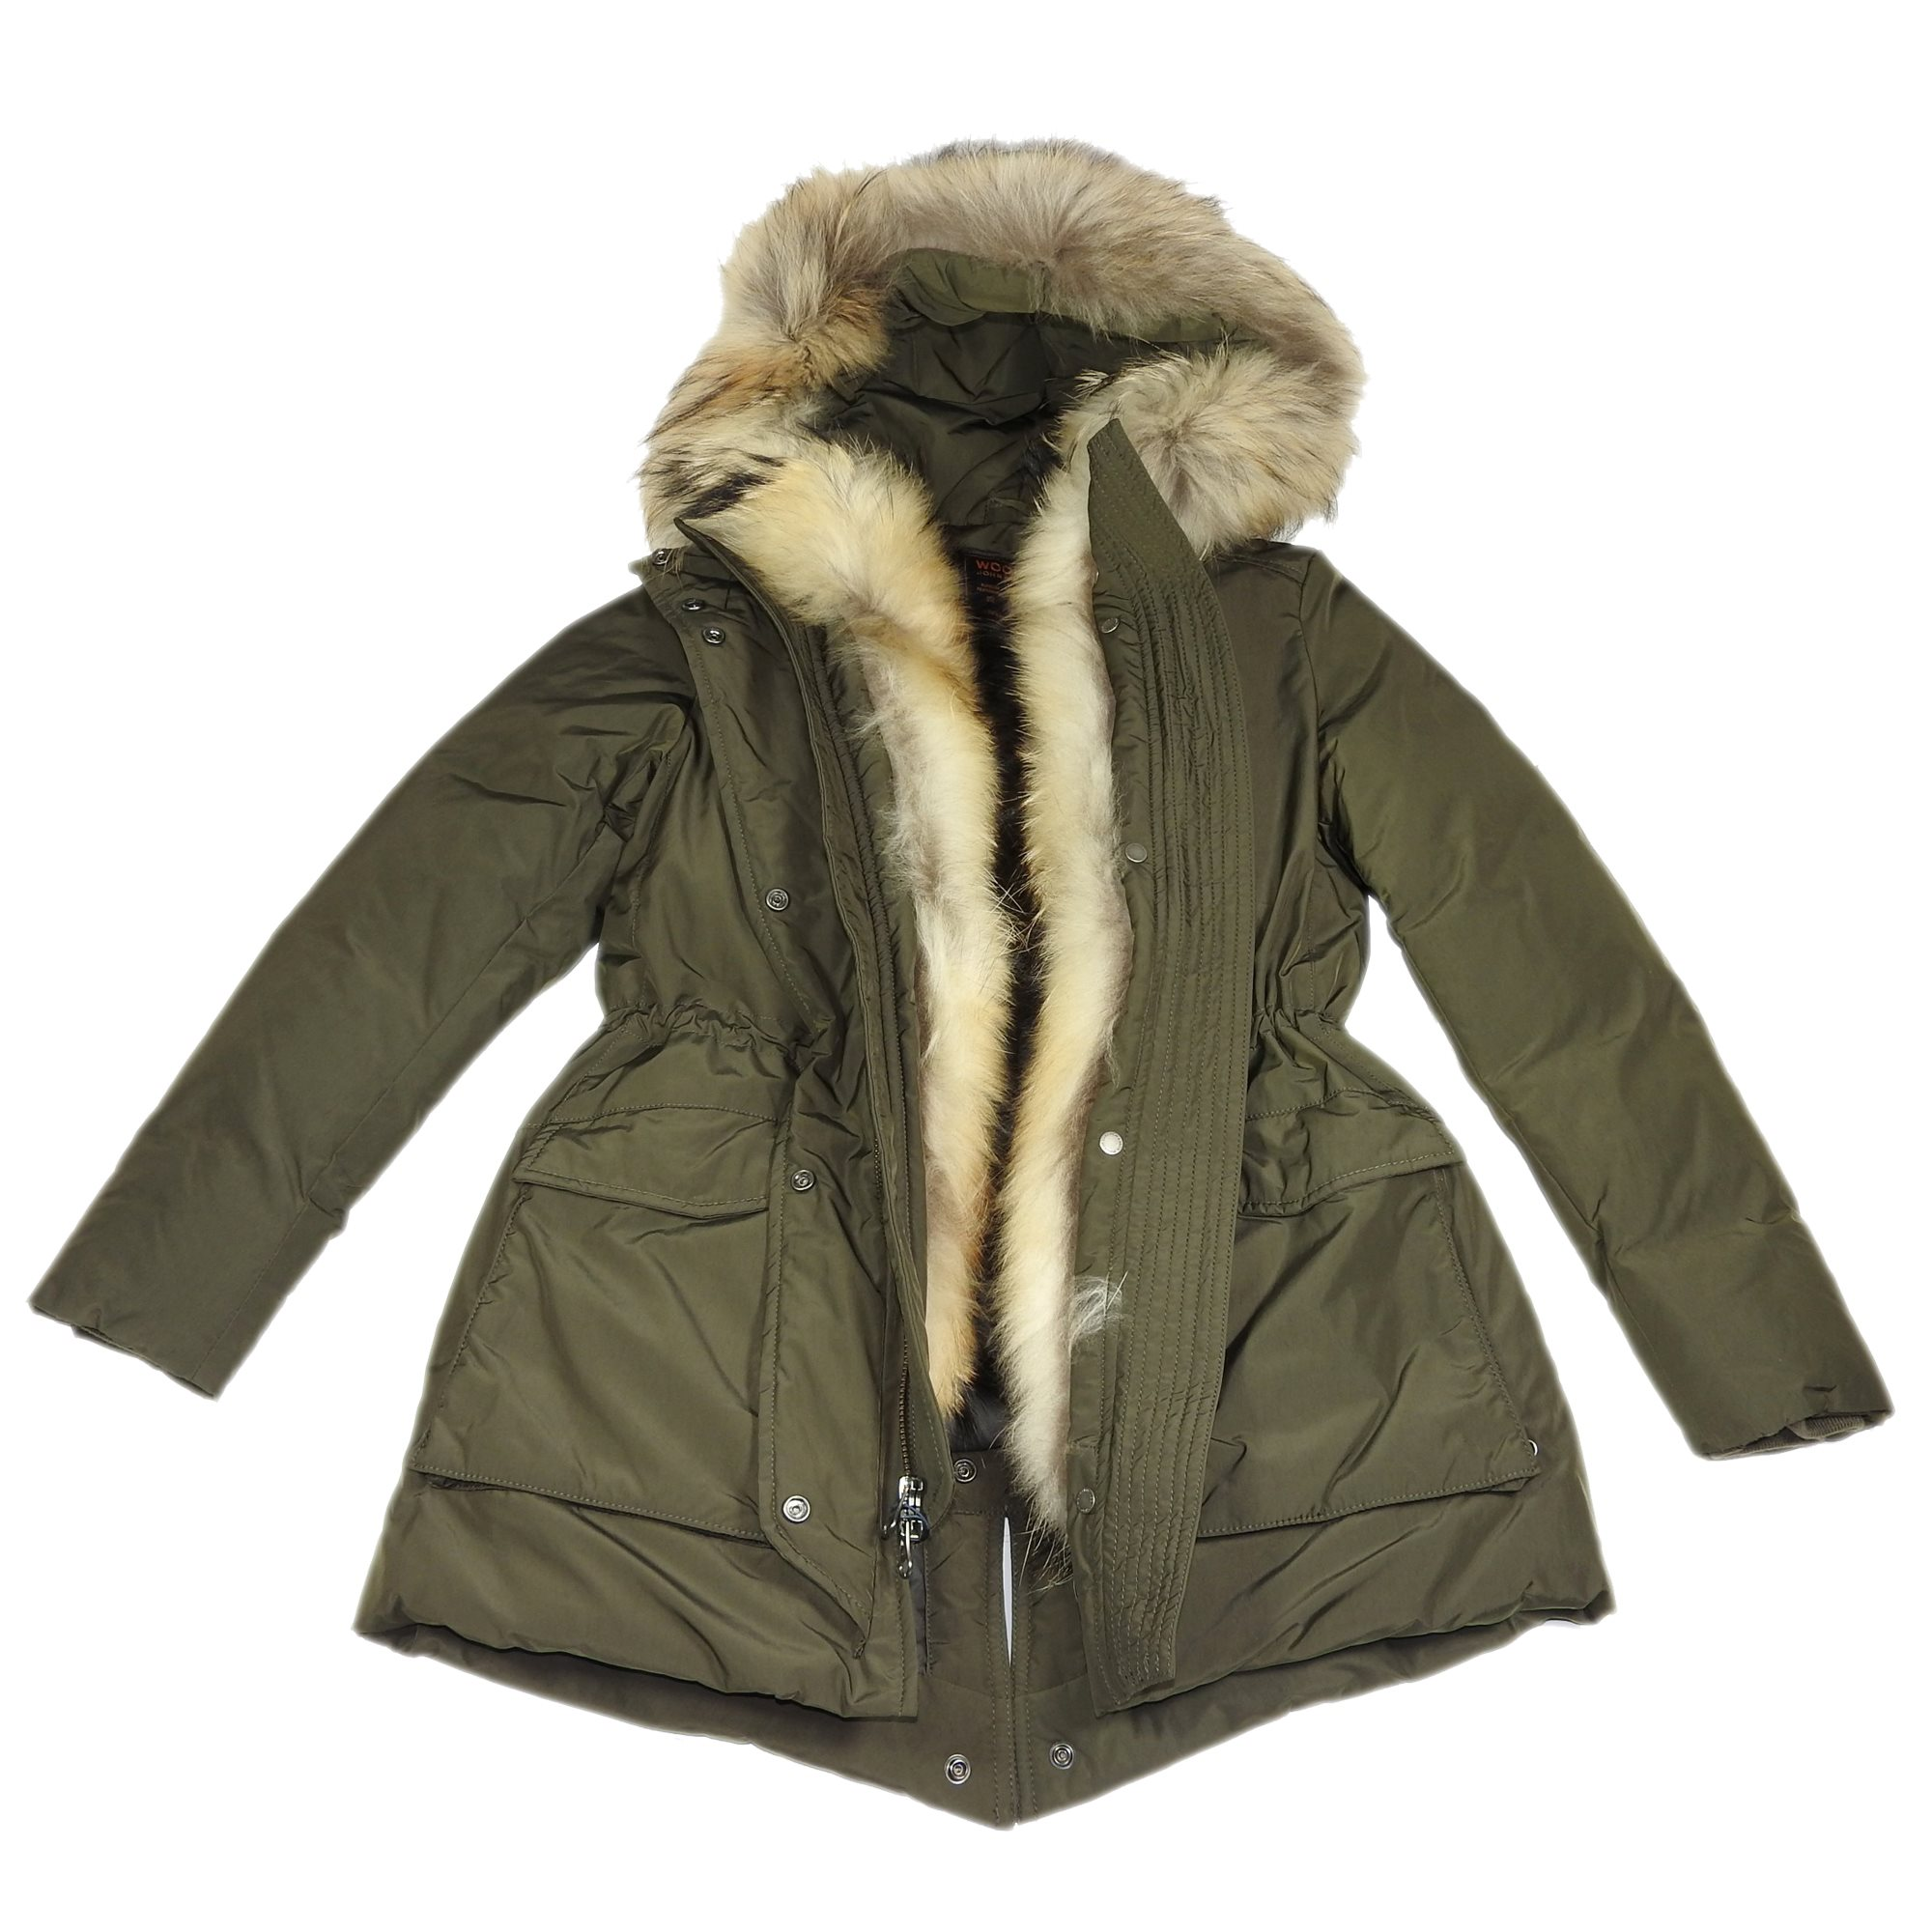 producten woolrich g military parka army la boite. Black Bedroom Furniture Sets. Home Design Ideas